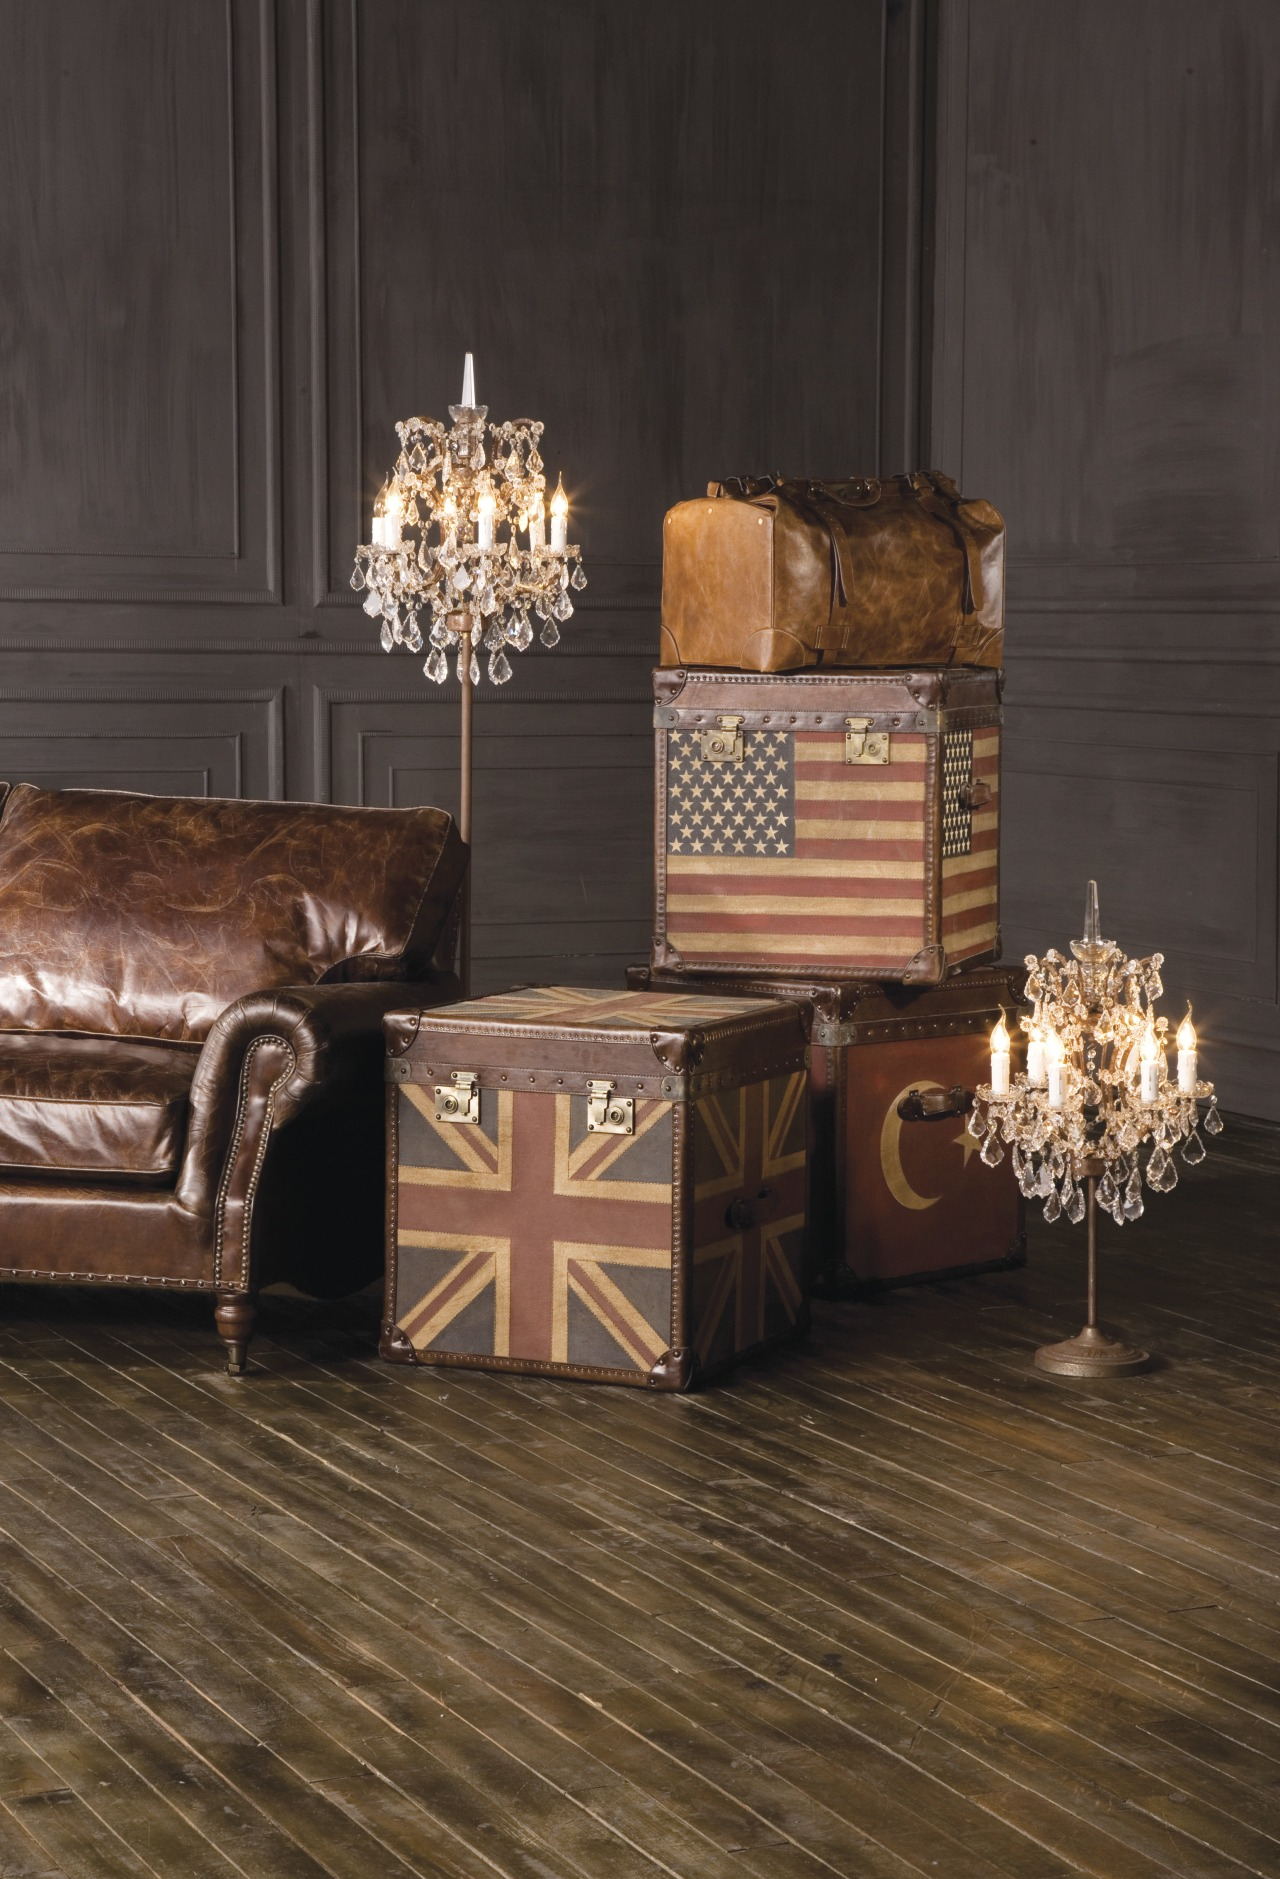 These soft furnishings were supplied and designed by brown, floor, flooring, furniture, hardwood, interior design, living room, table, wood, wood flooring, black, brown